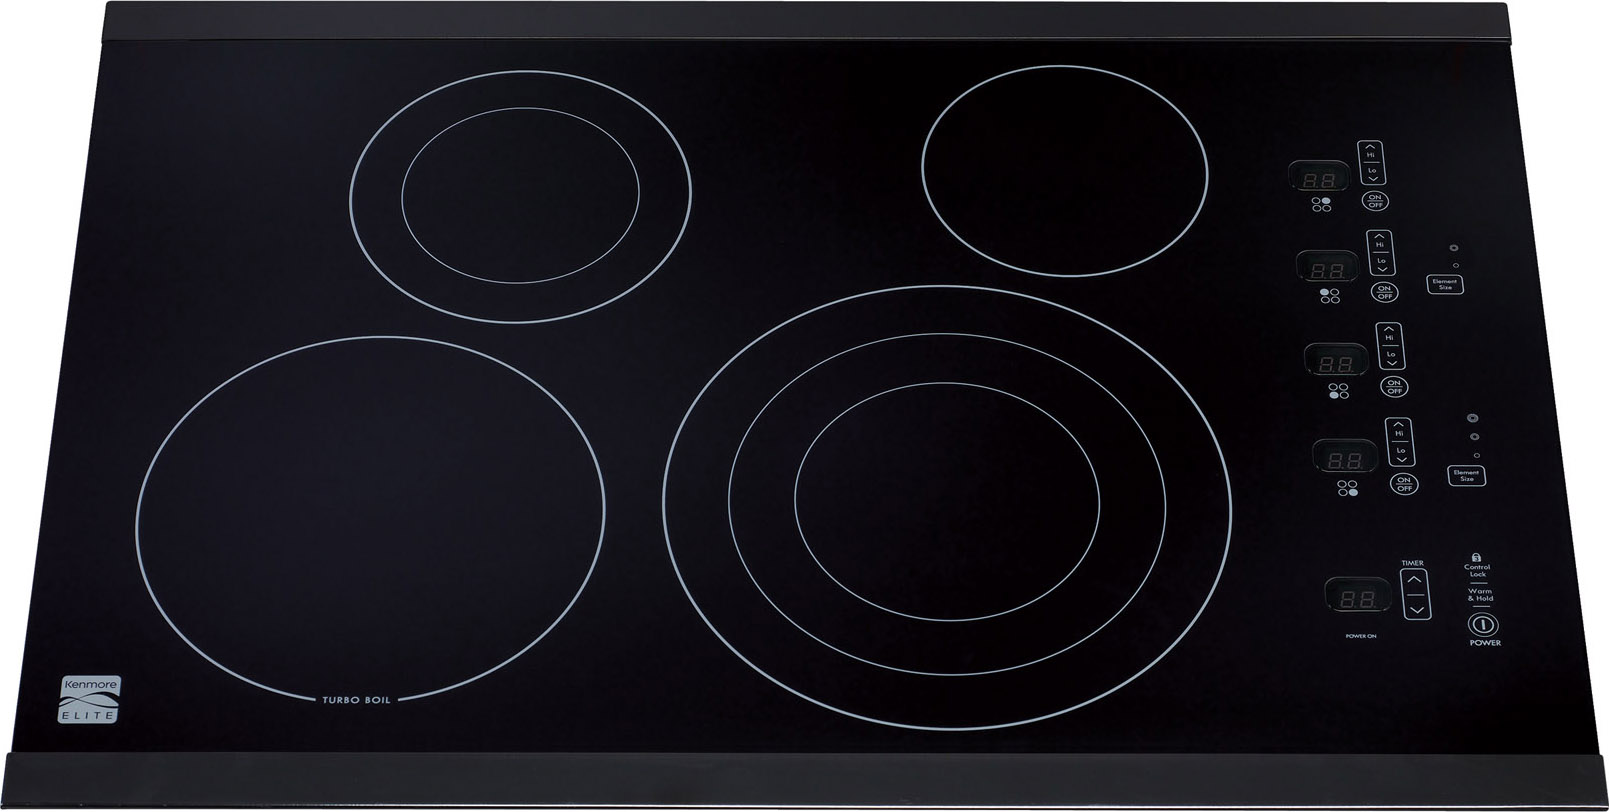 "Kenmore Elite 30"" Electric Cooktop - Black"